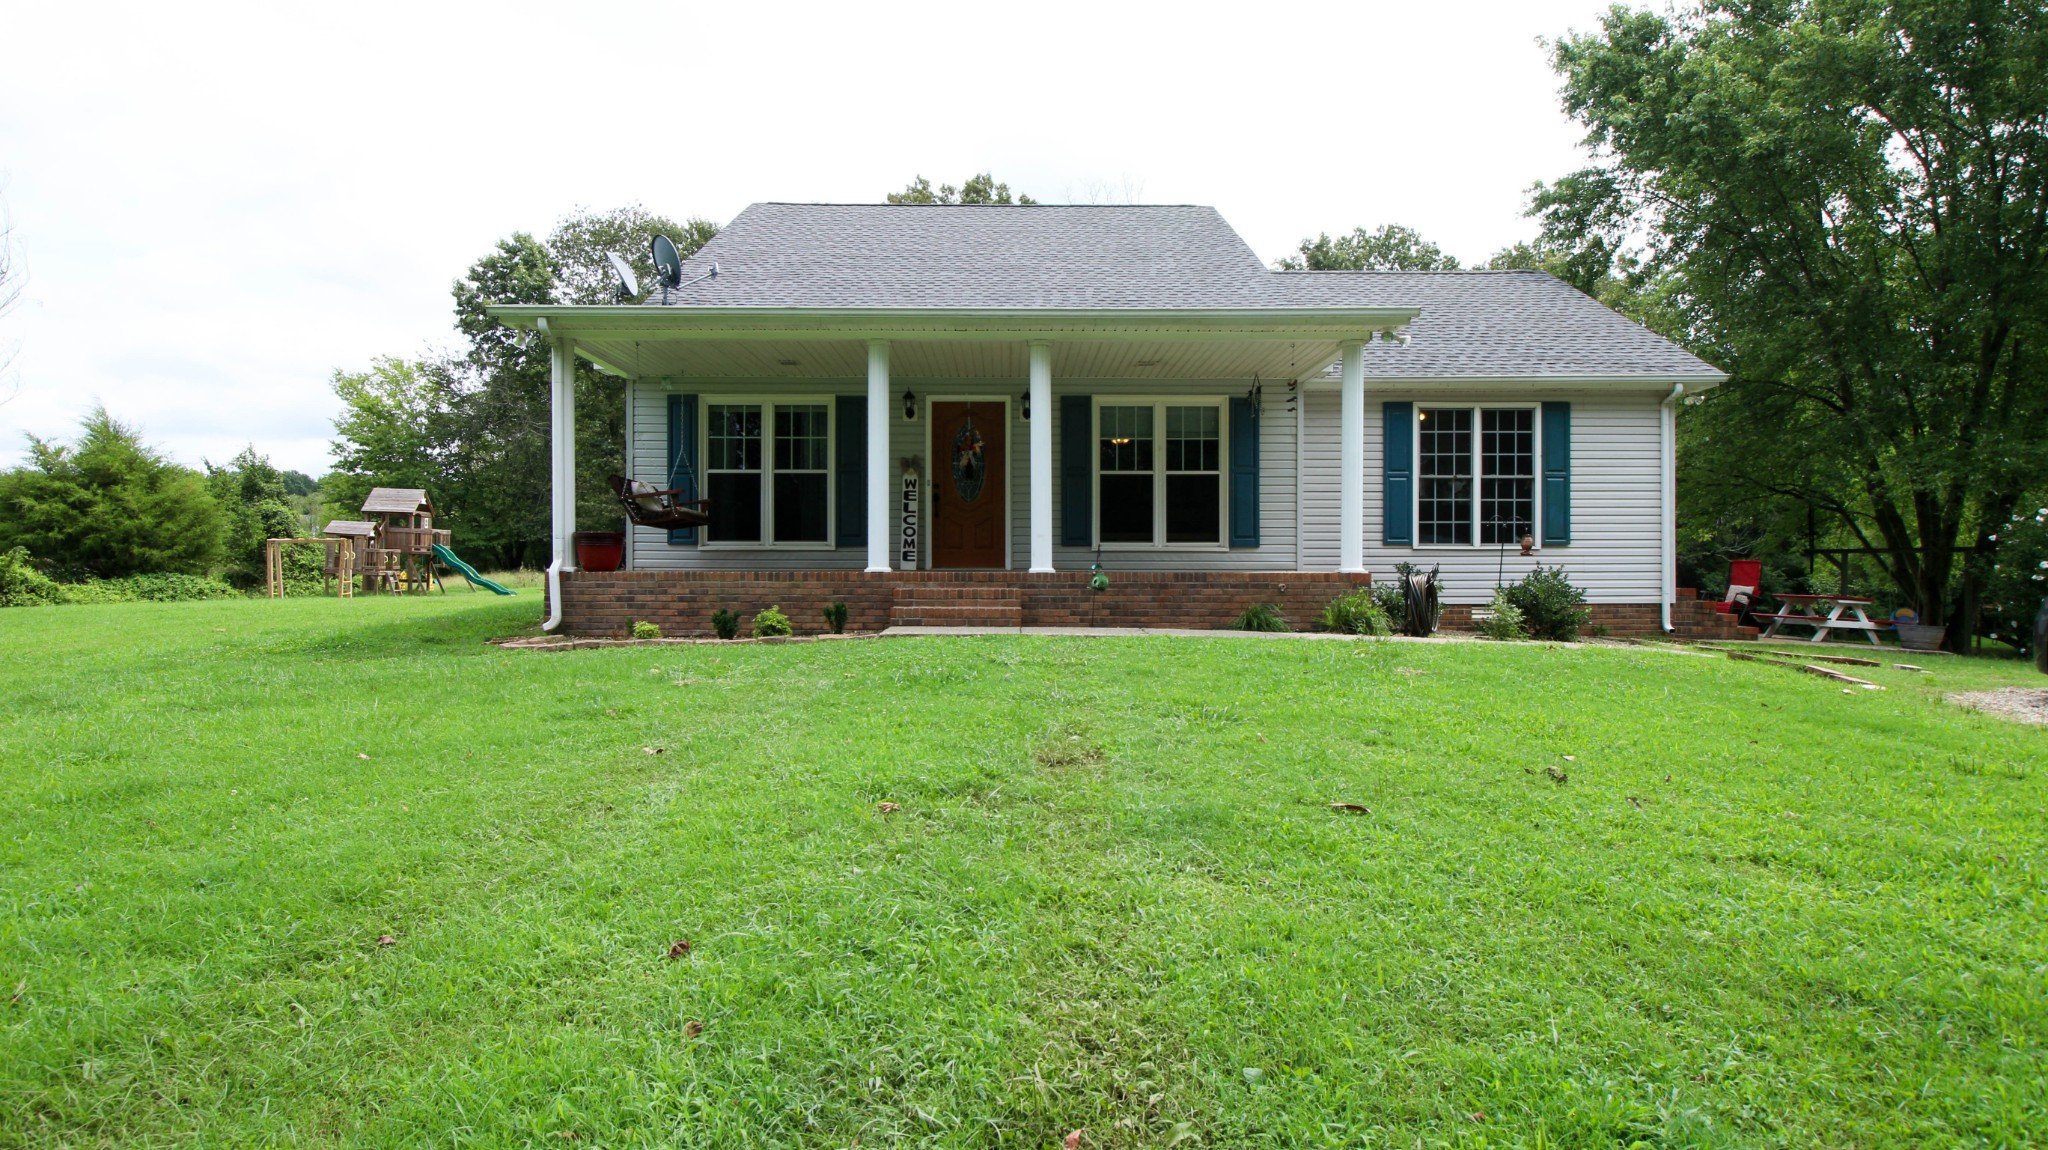 6317 Buzzard Creek Rd Property Photo - Cedar Hill, TN real estate listing